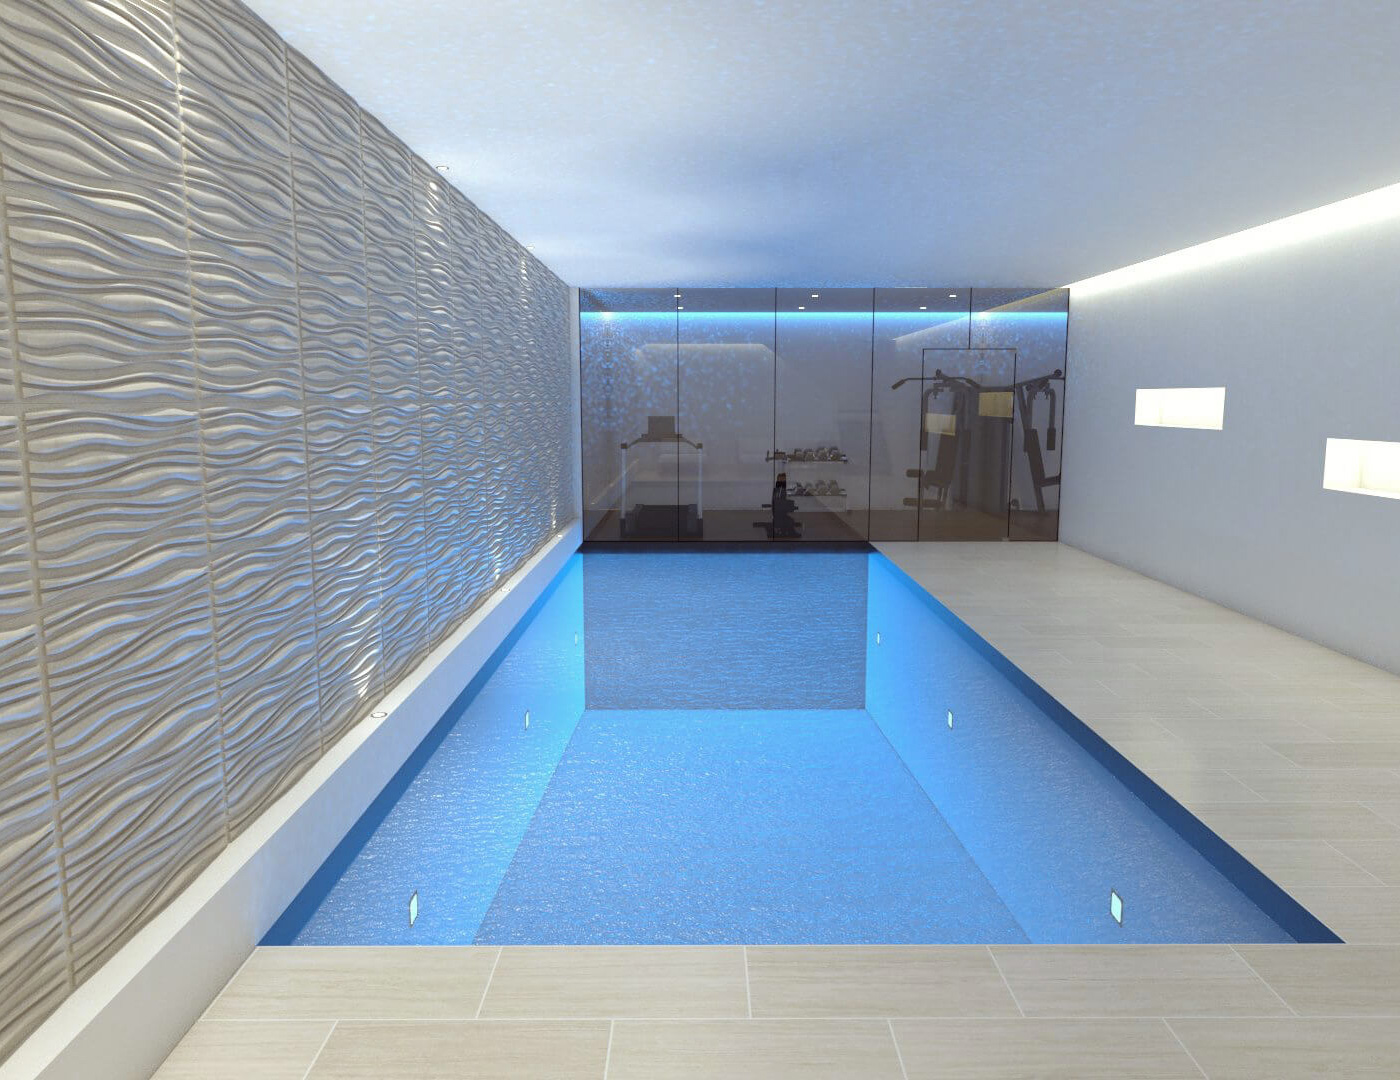 Basement Swimming Pool Steam Room Spa Construction